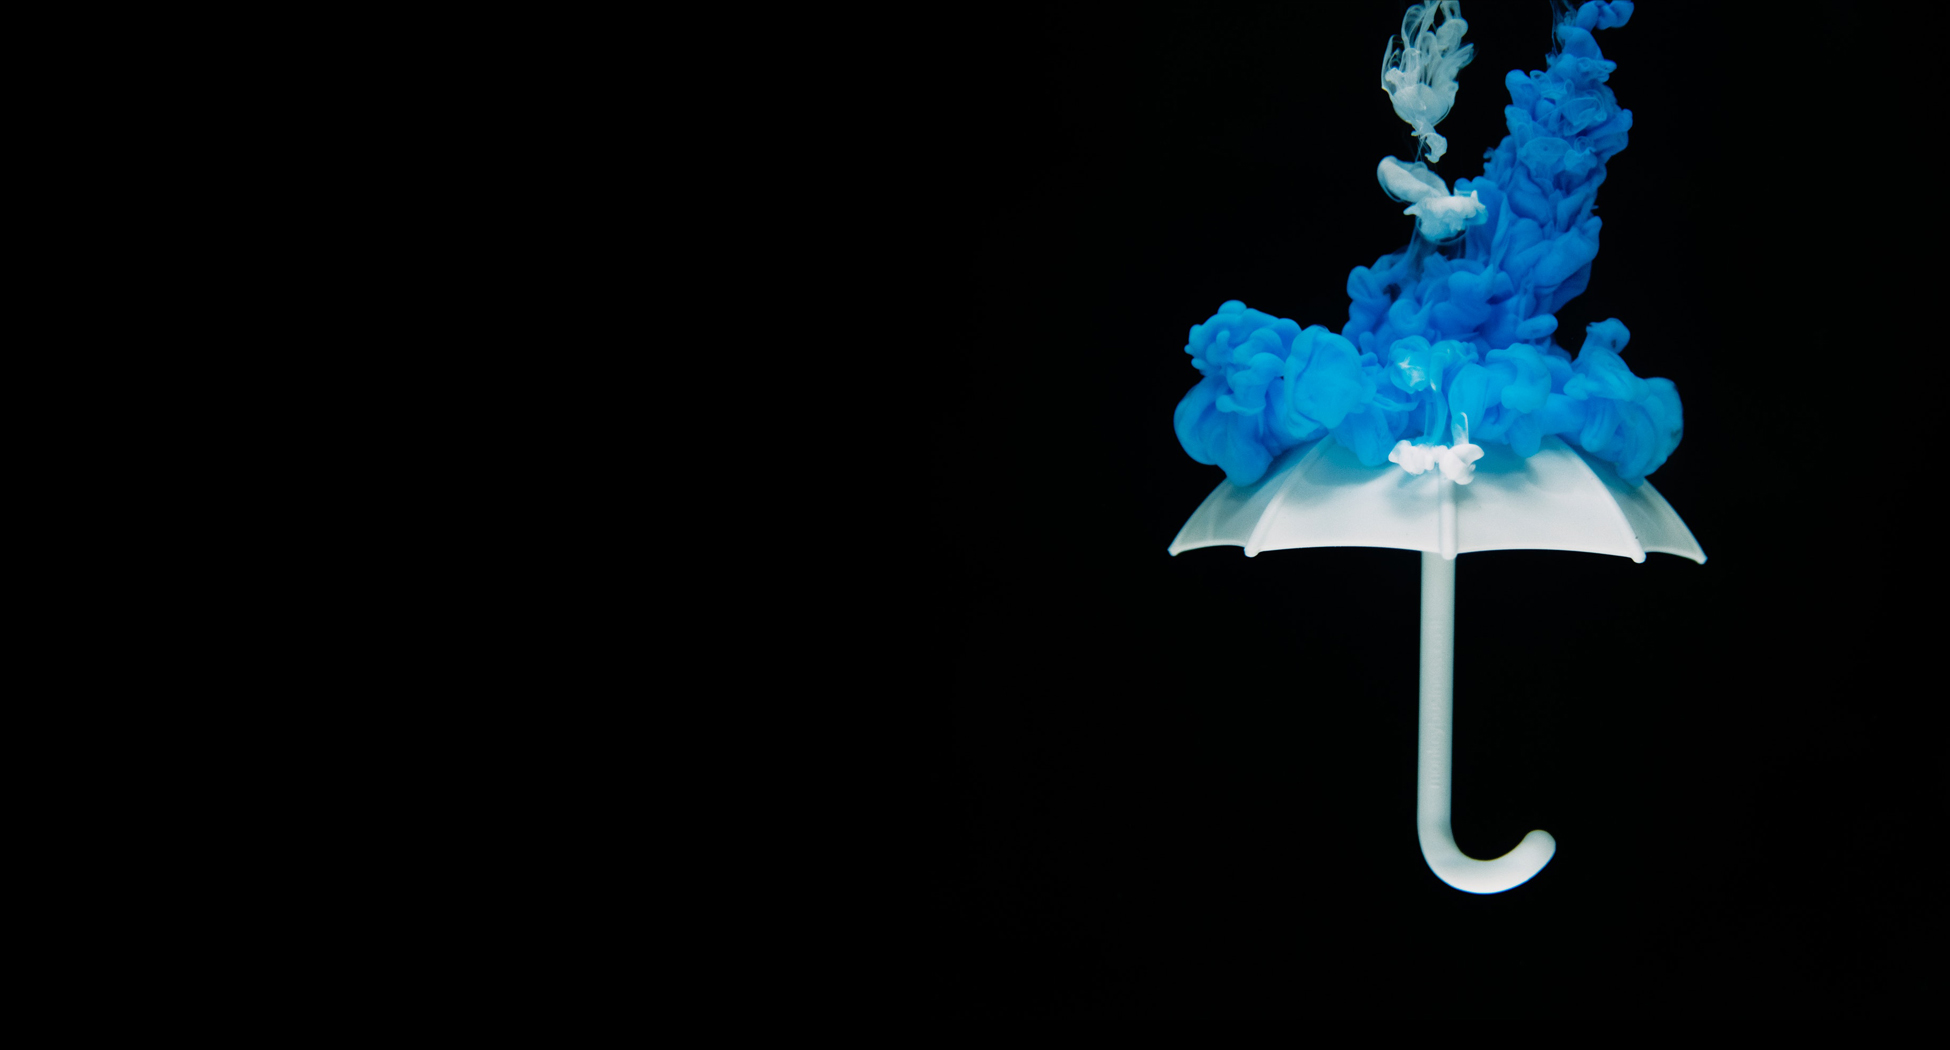 photo of while umbrella with blue ink puffs on black background